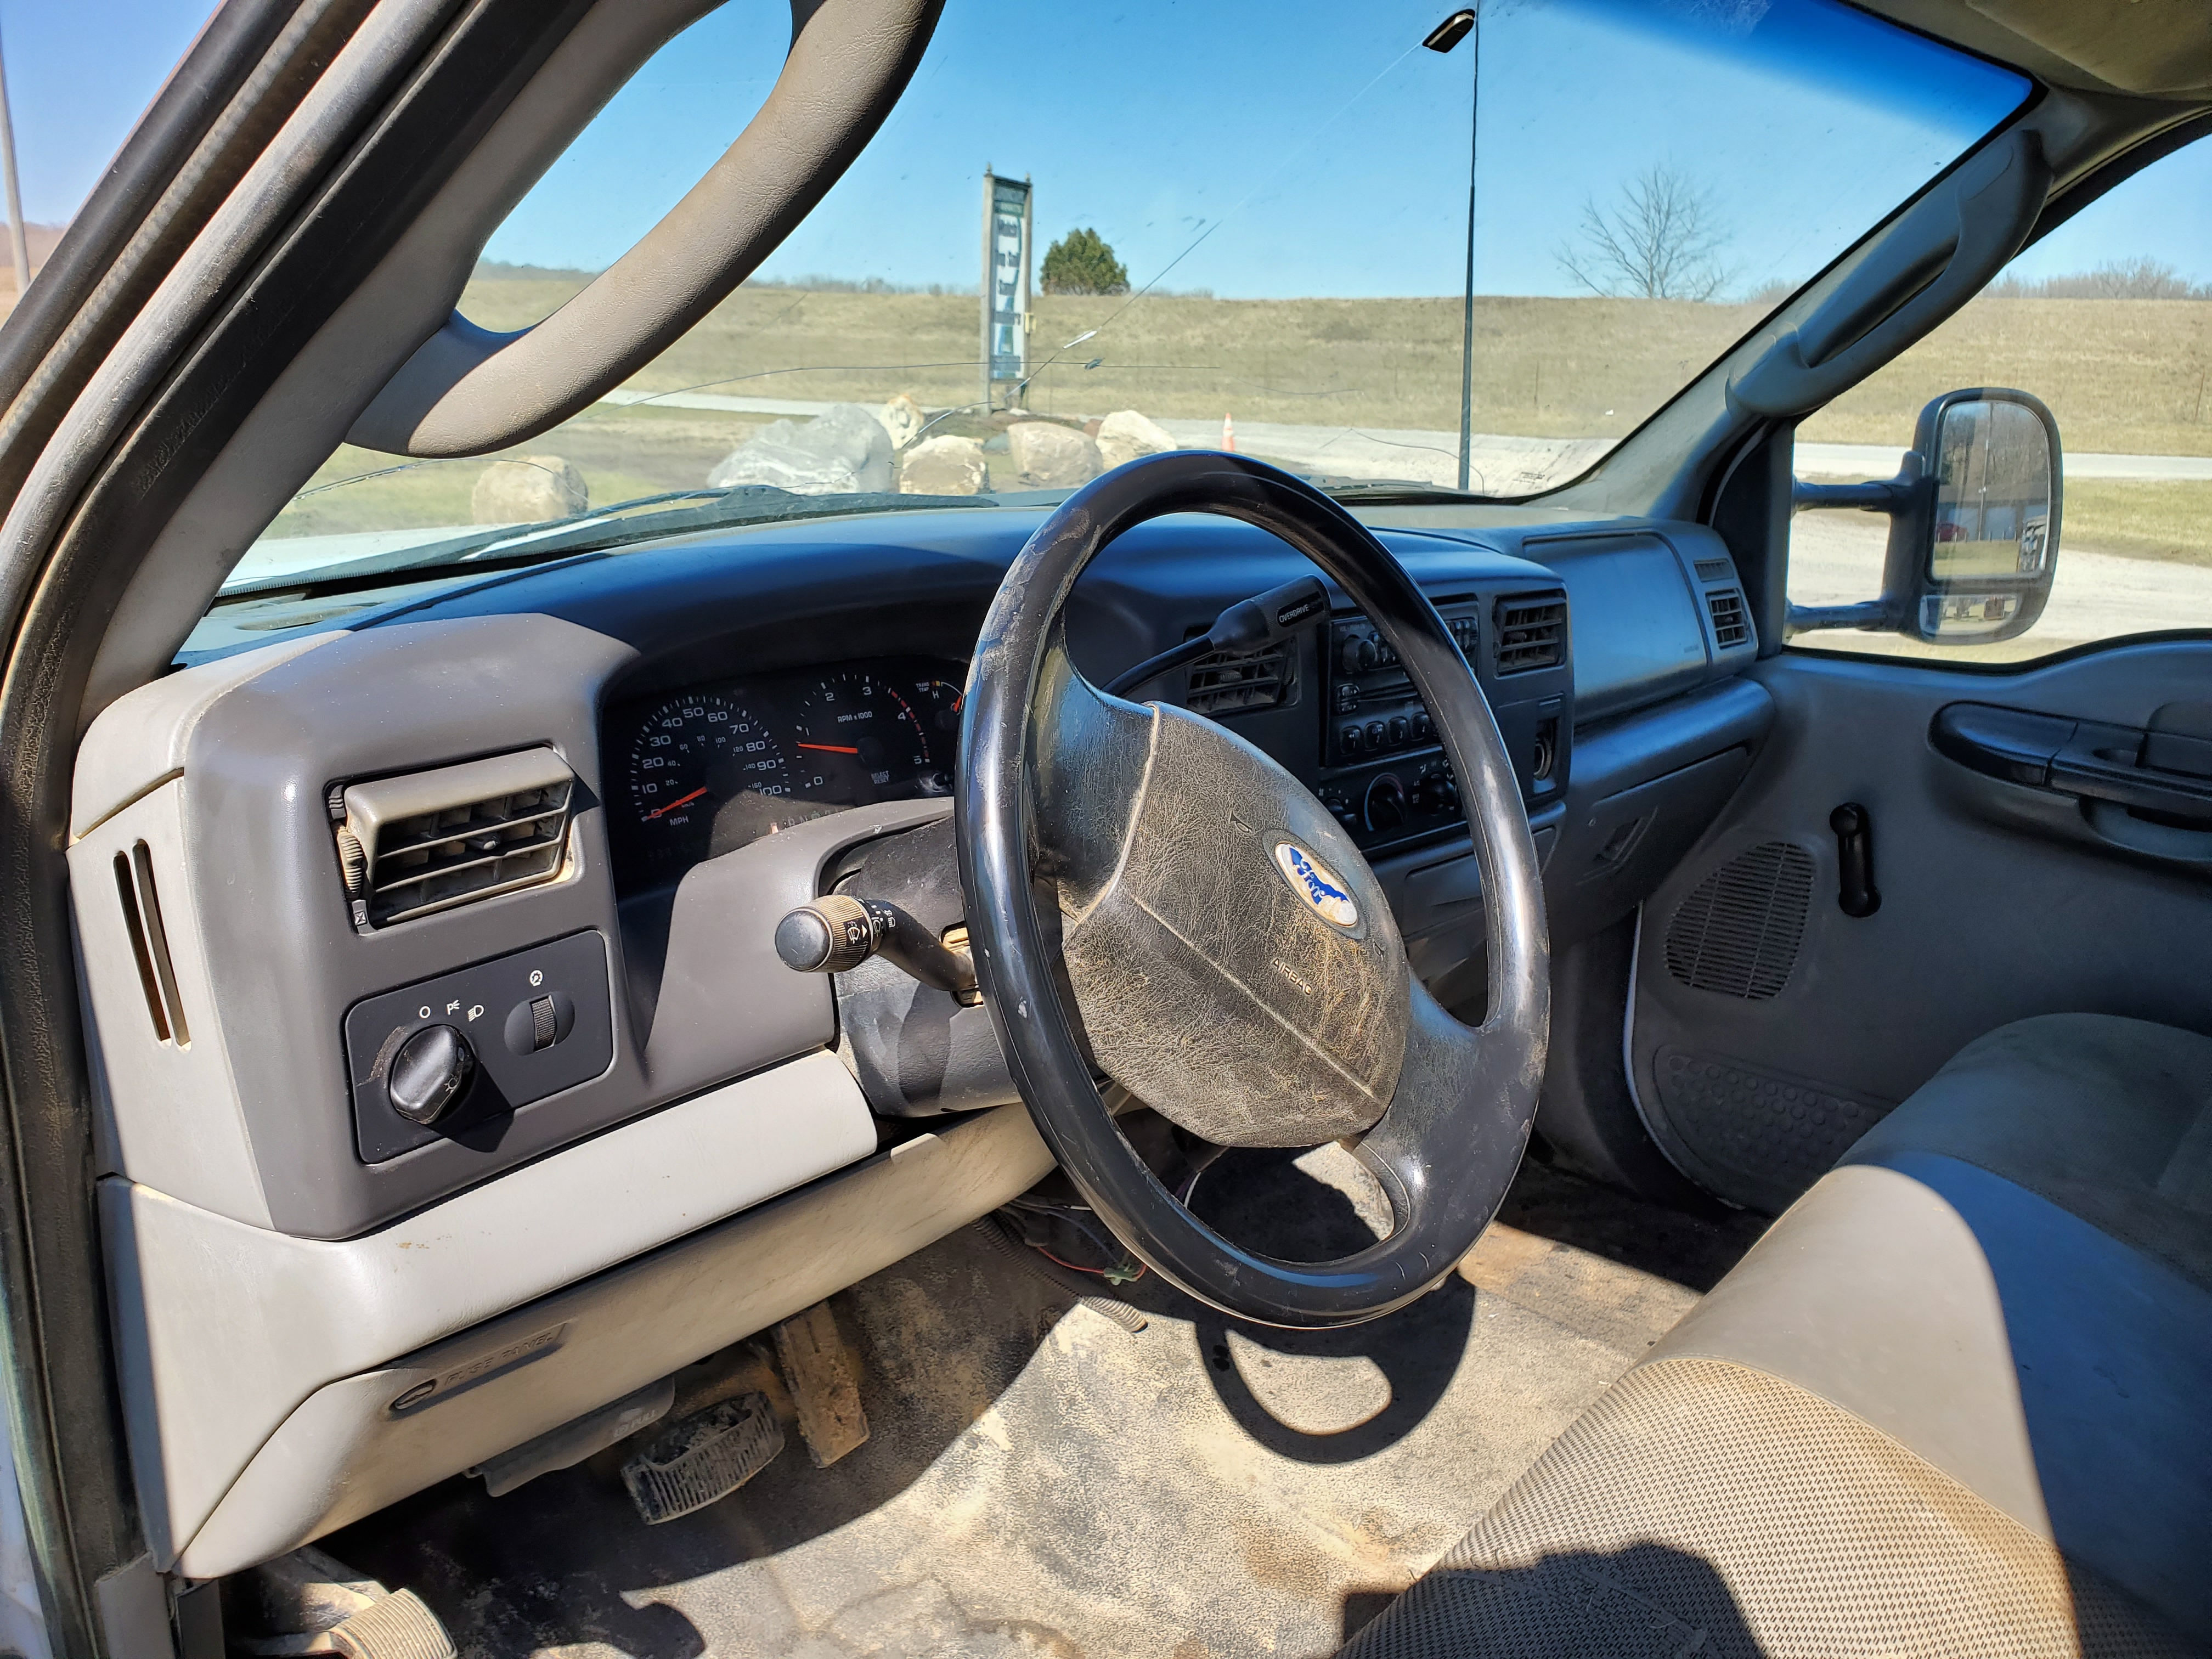 2003 F550 Ford Super Duty Pickup, Automatic, 7.3 Power Stroke Diesel, 8' Foot Omaha Flatbed - Image 14 of 18